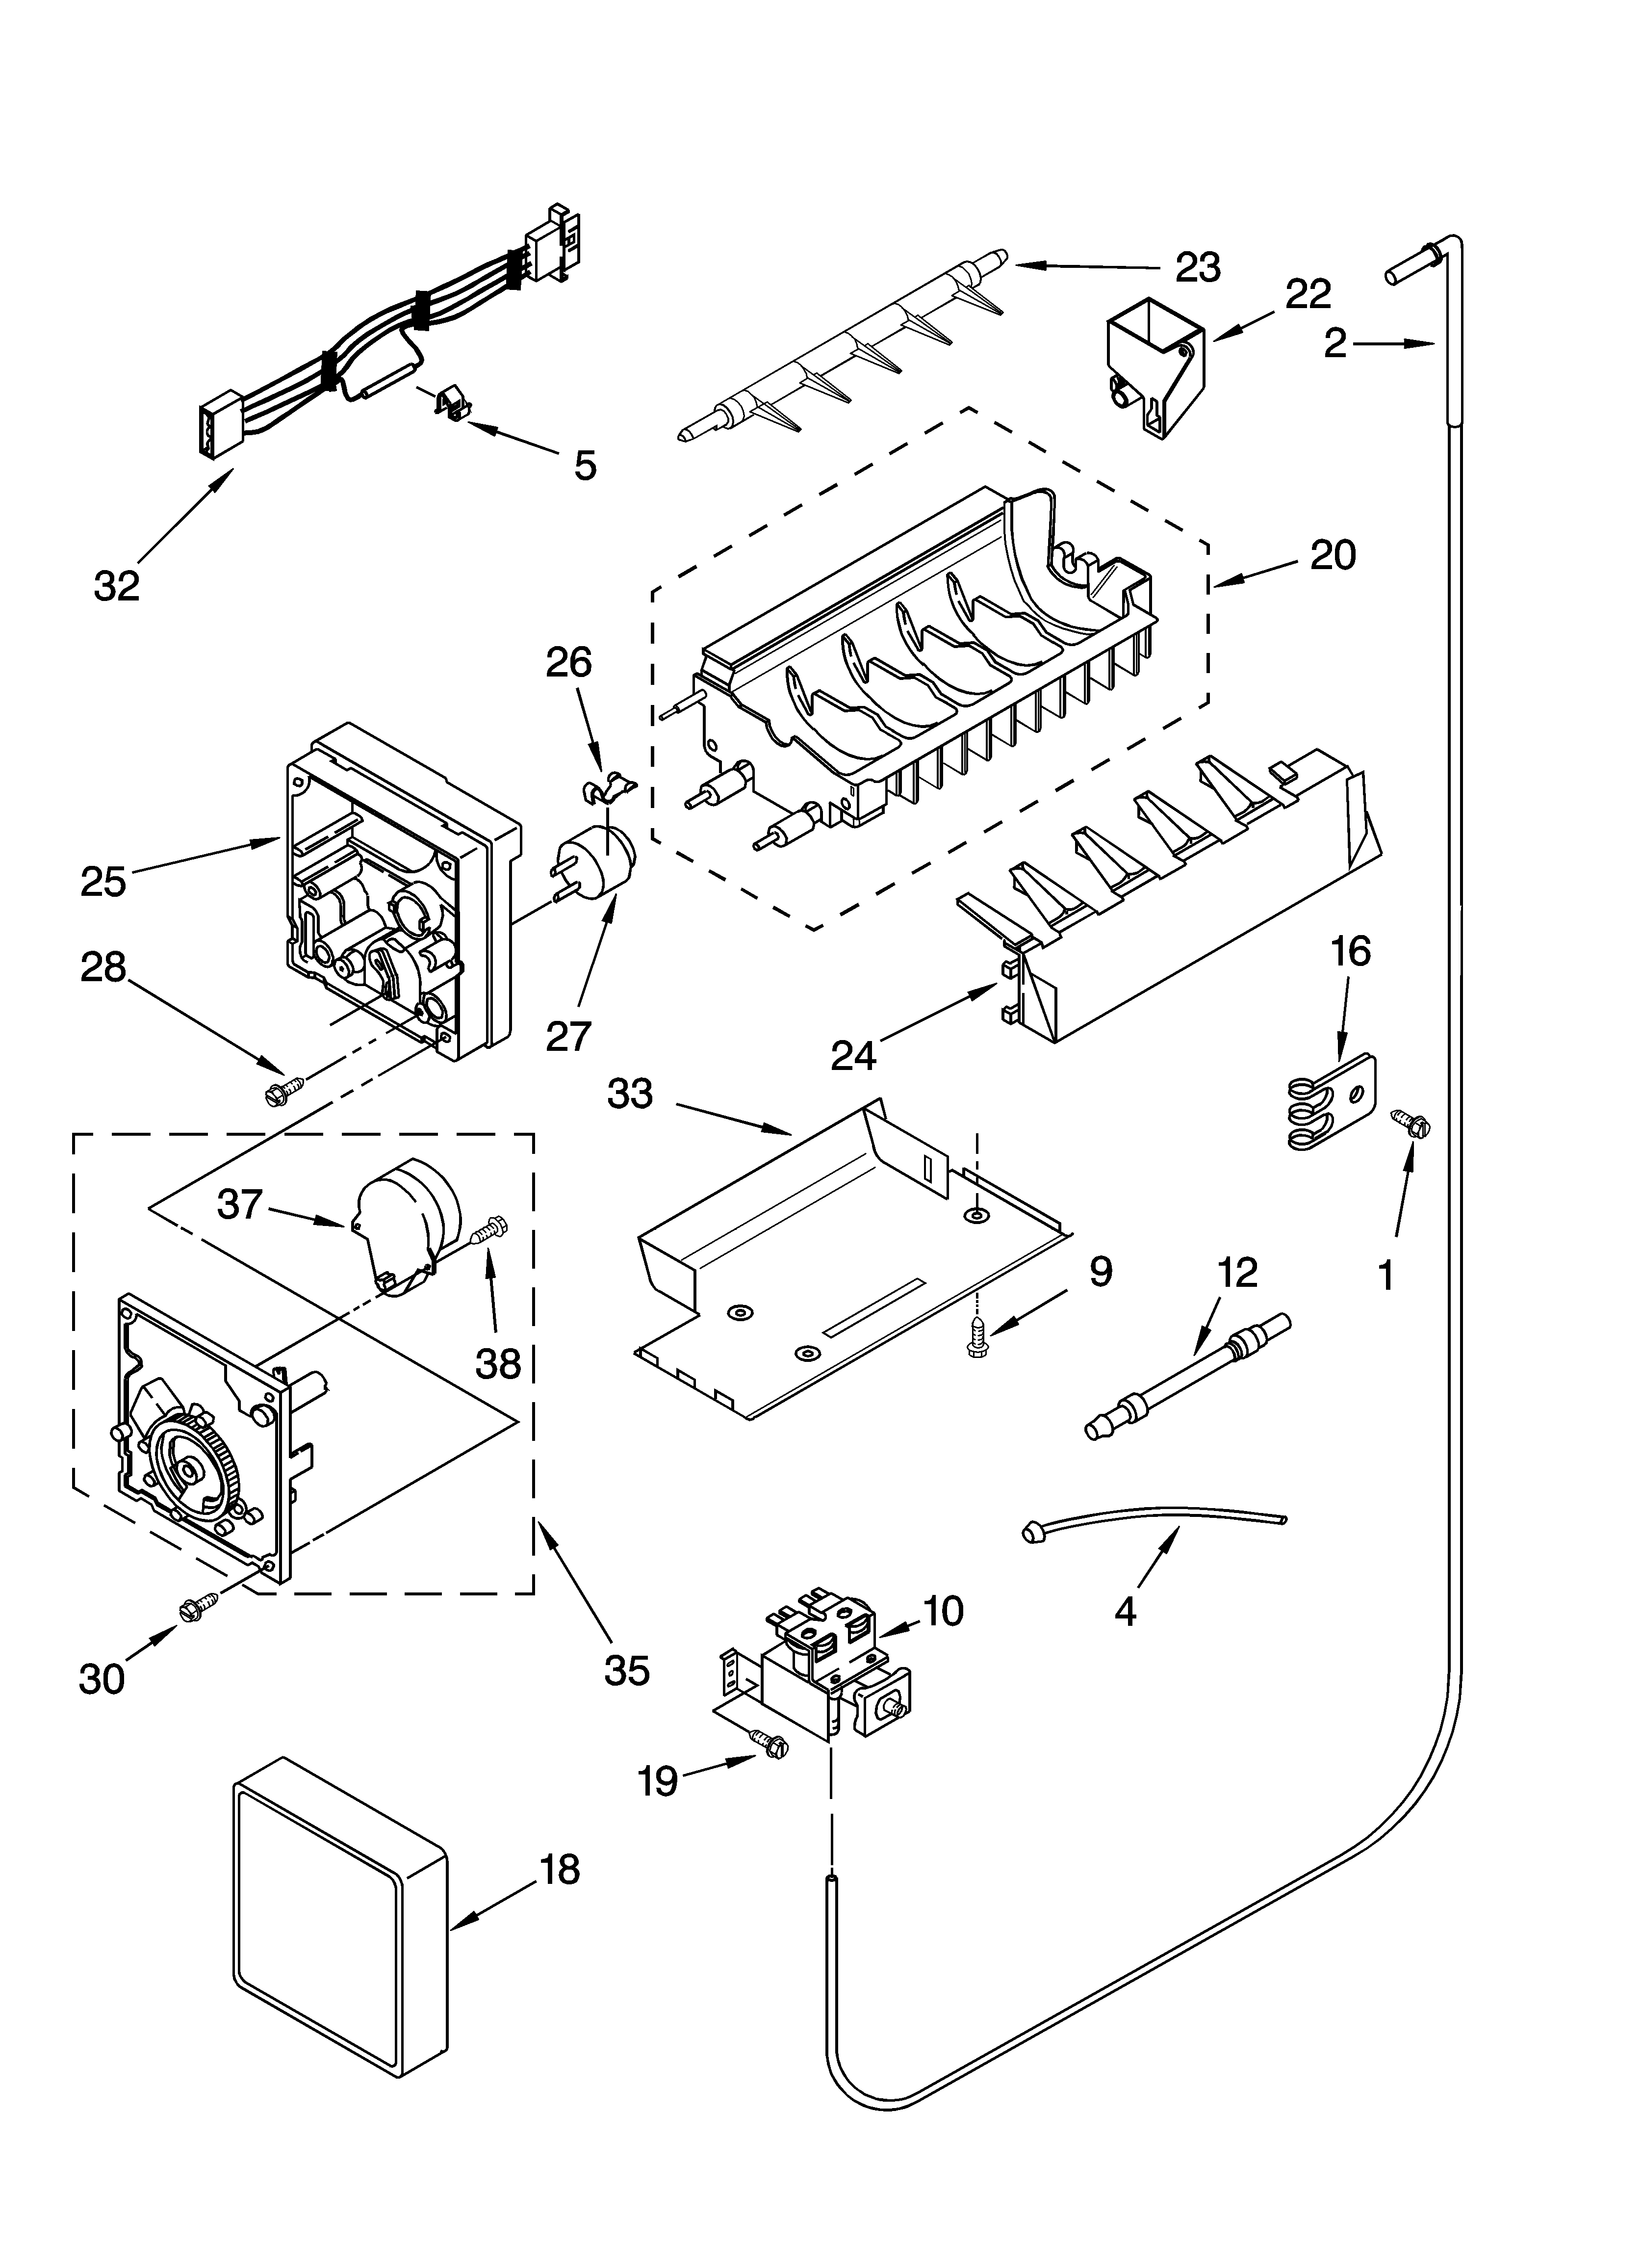 ICEMAKER PARTS Diagram & Parts List for Model ED2SHAXMB10